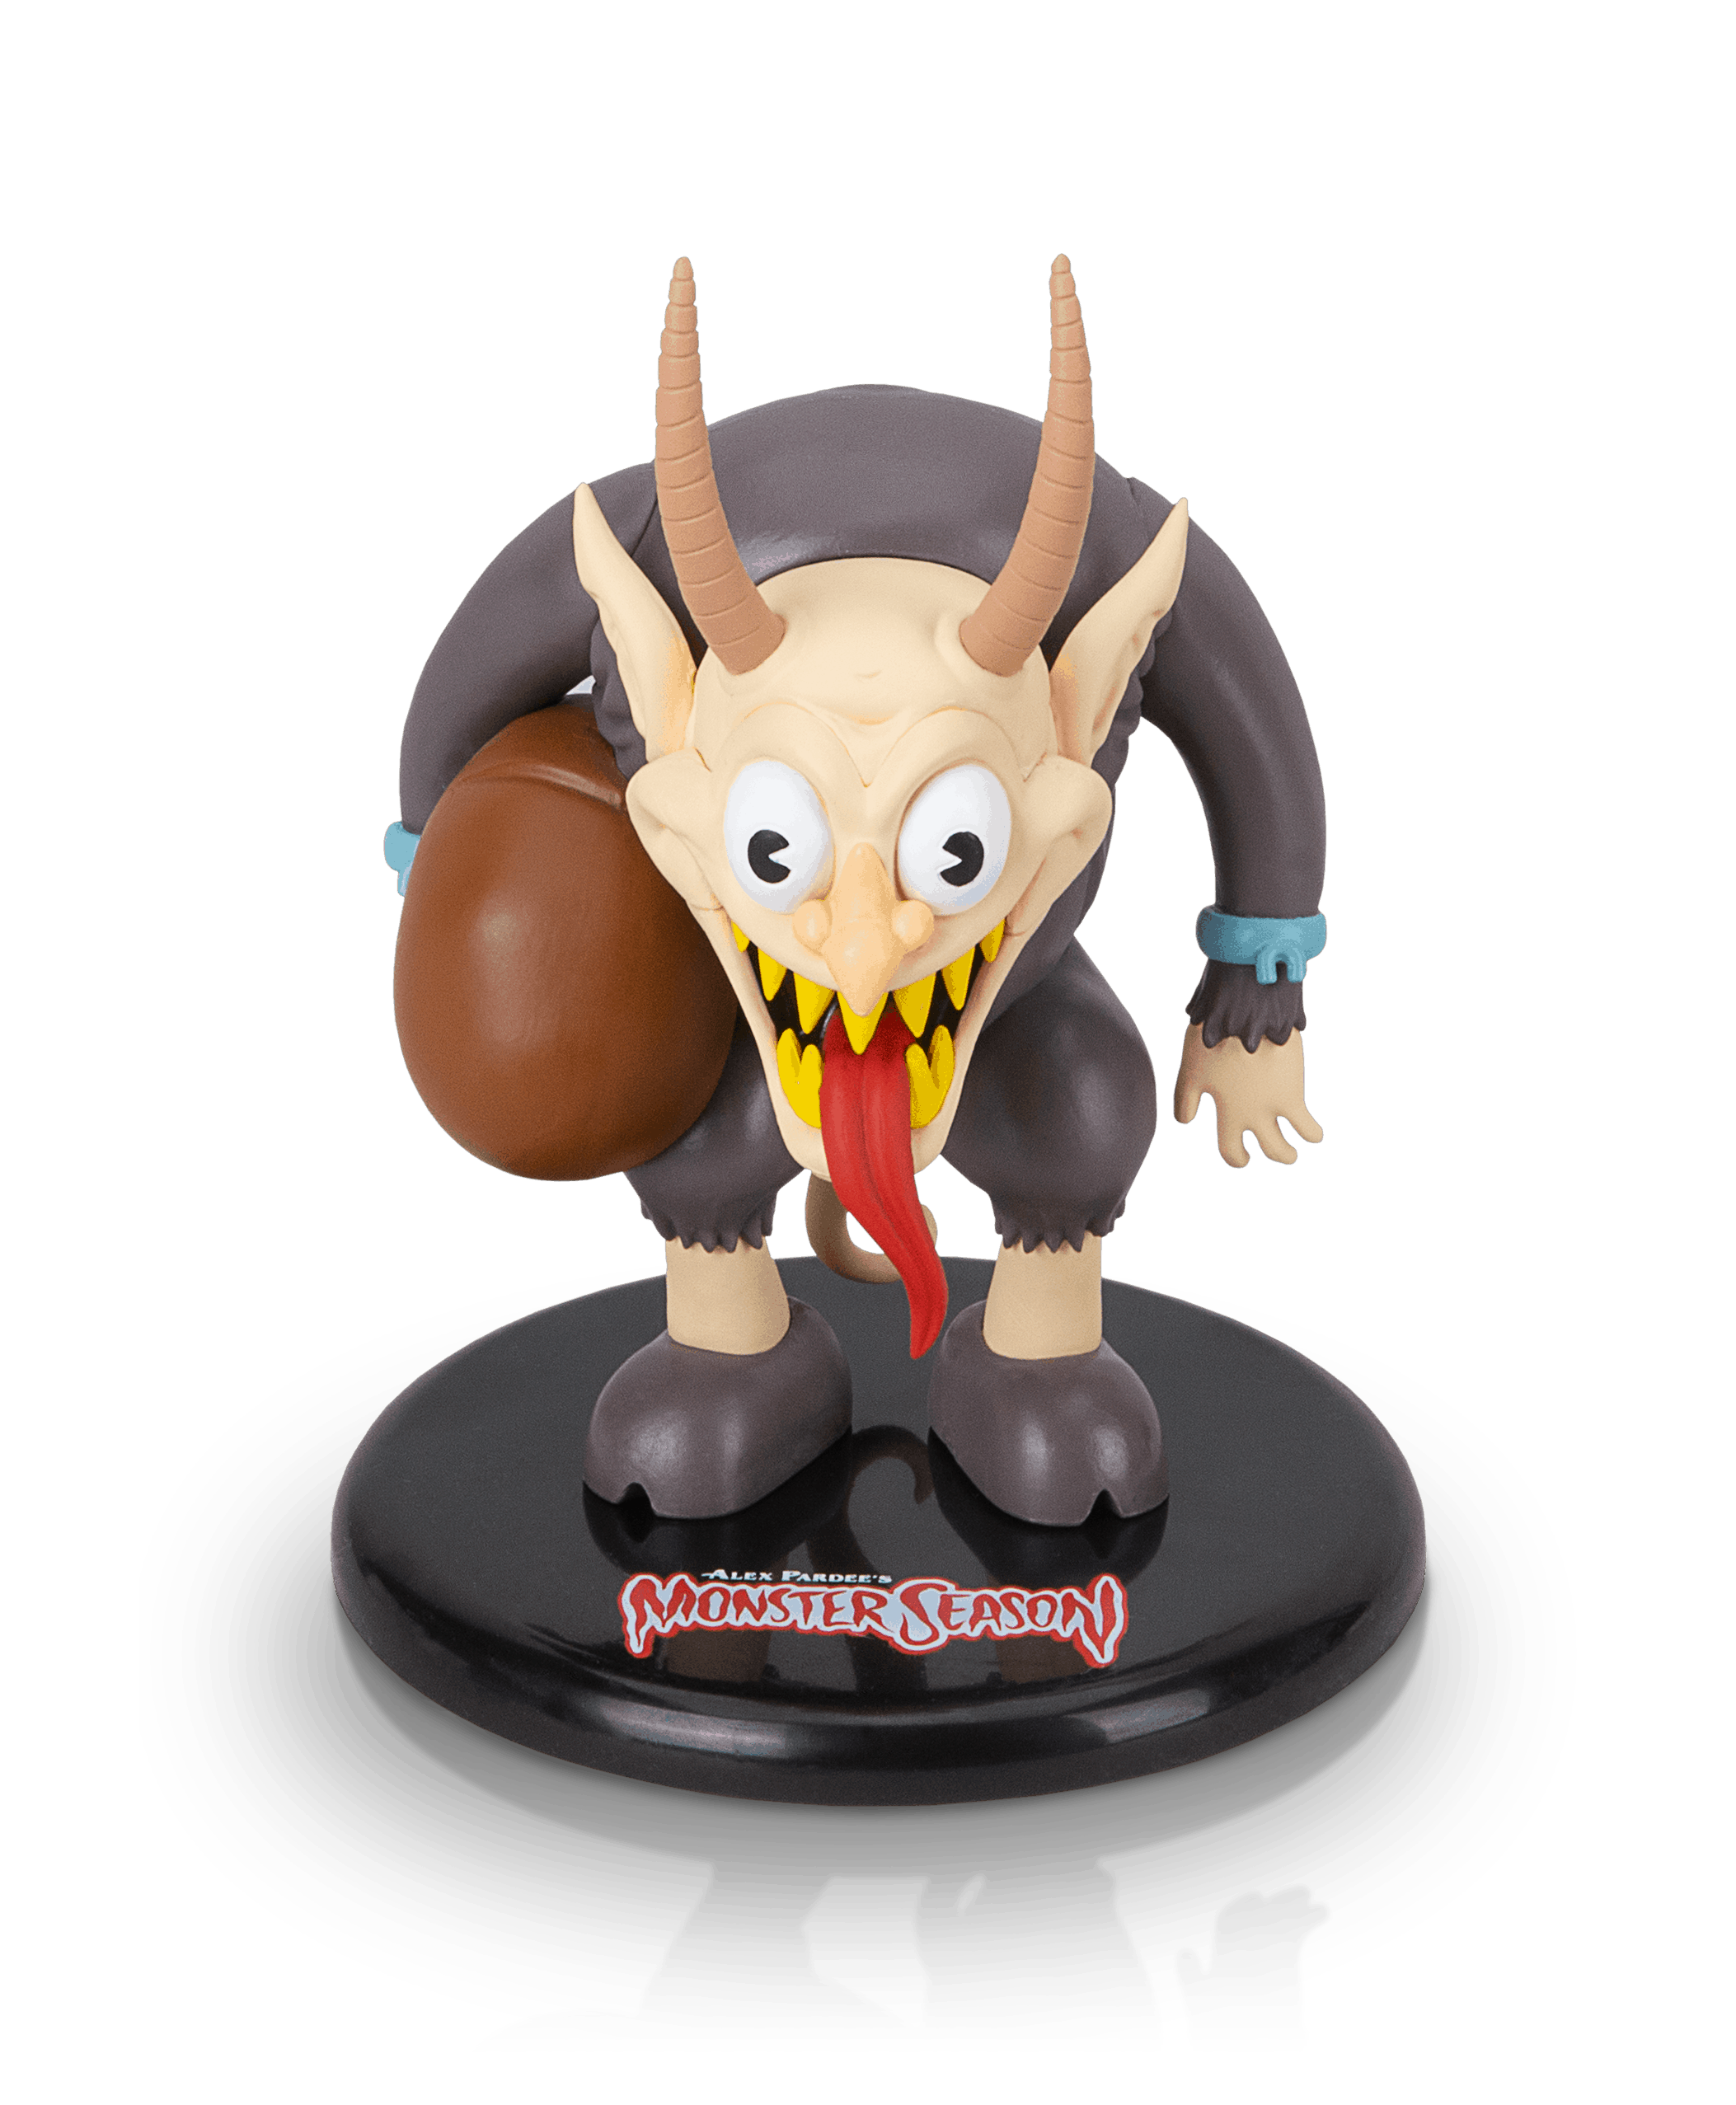 Mr. Kramp is Unleashed in the New Fright Crate! 3